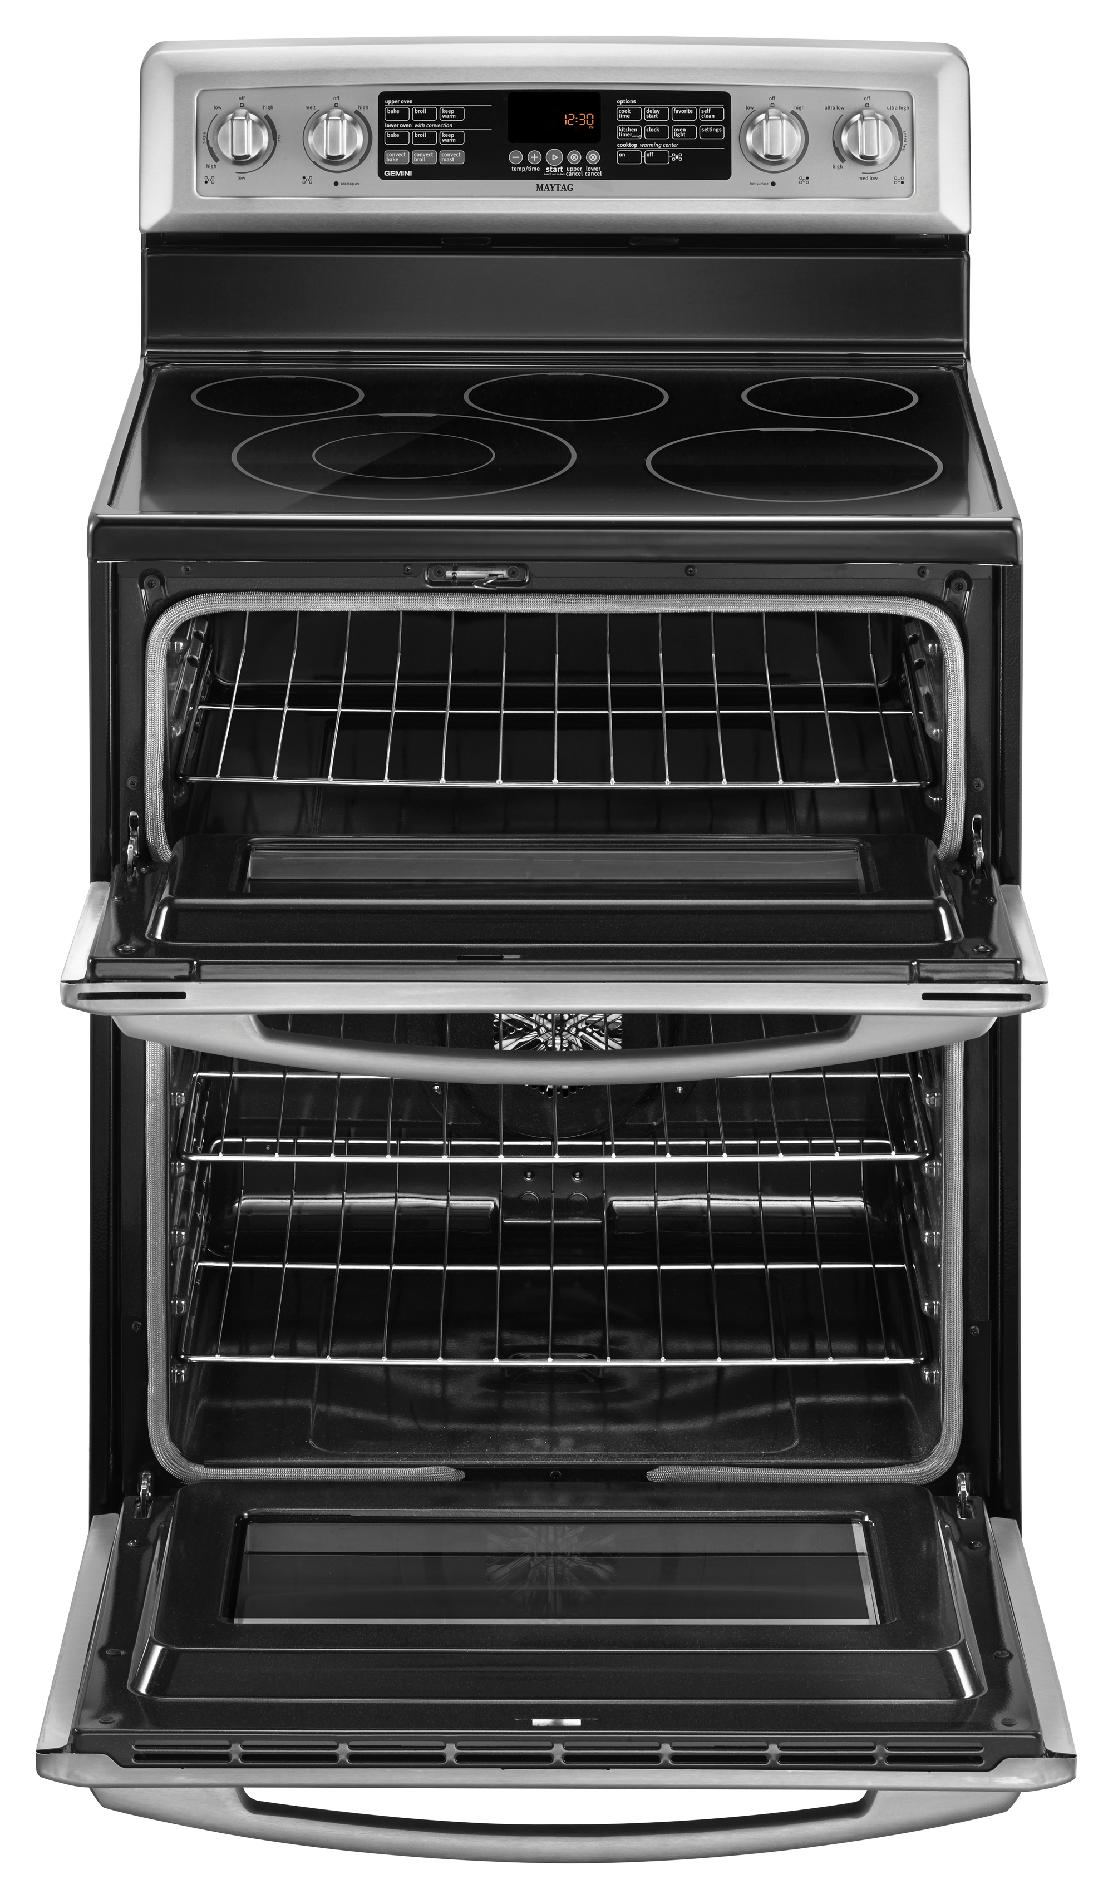 Maytag 6.7 cu. ft. Electric Range w/ Even-Air™ Convection - Stainless Steel